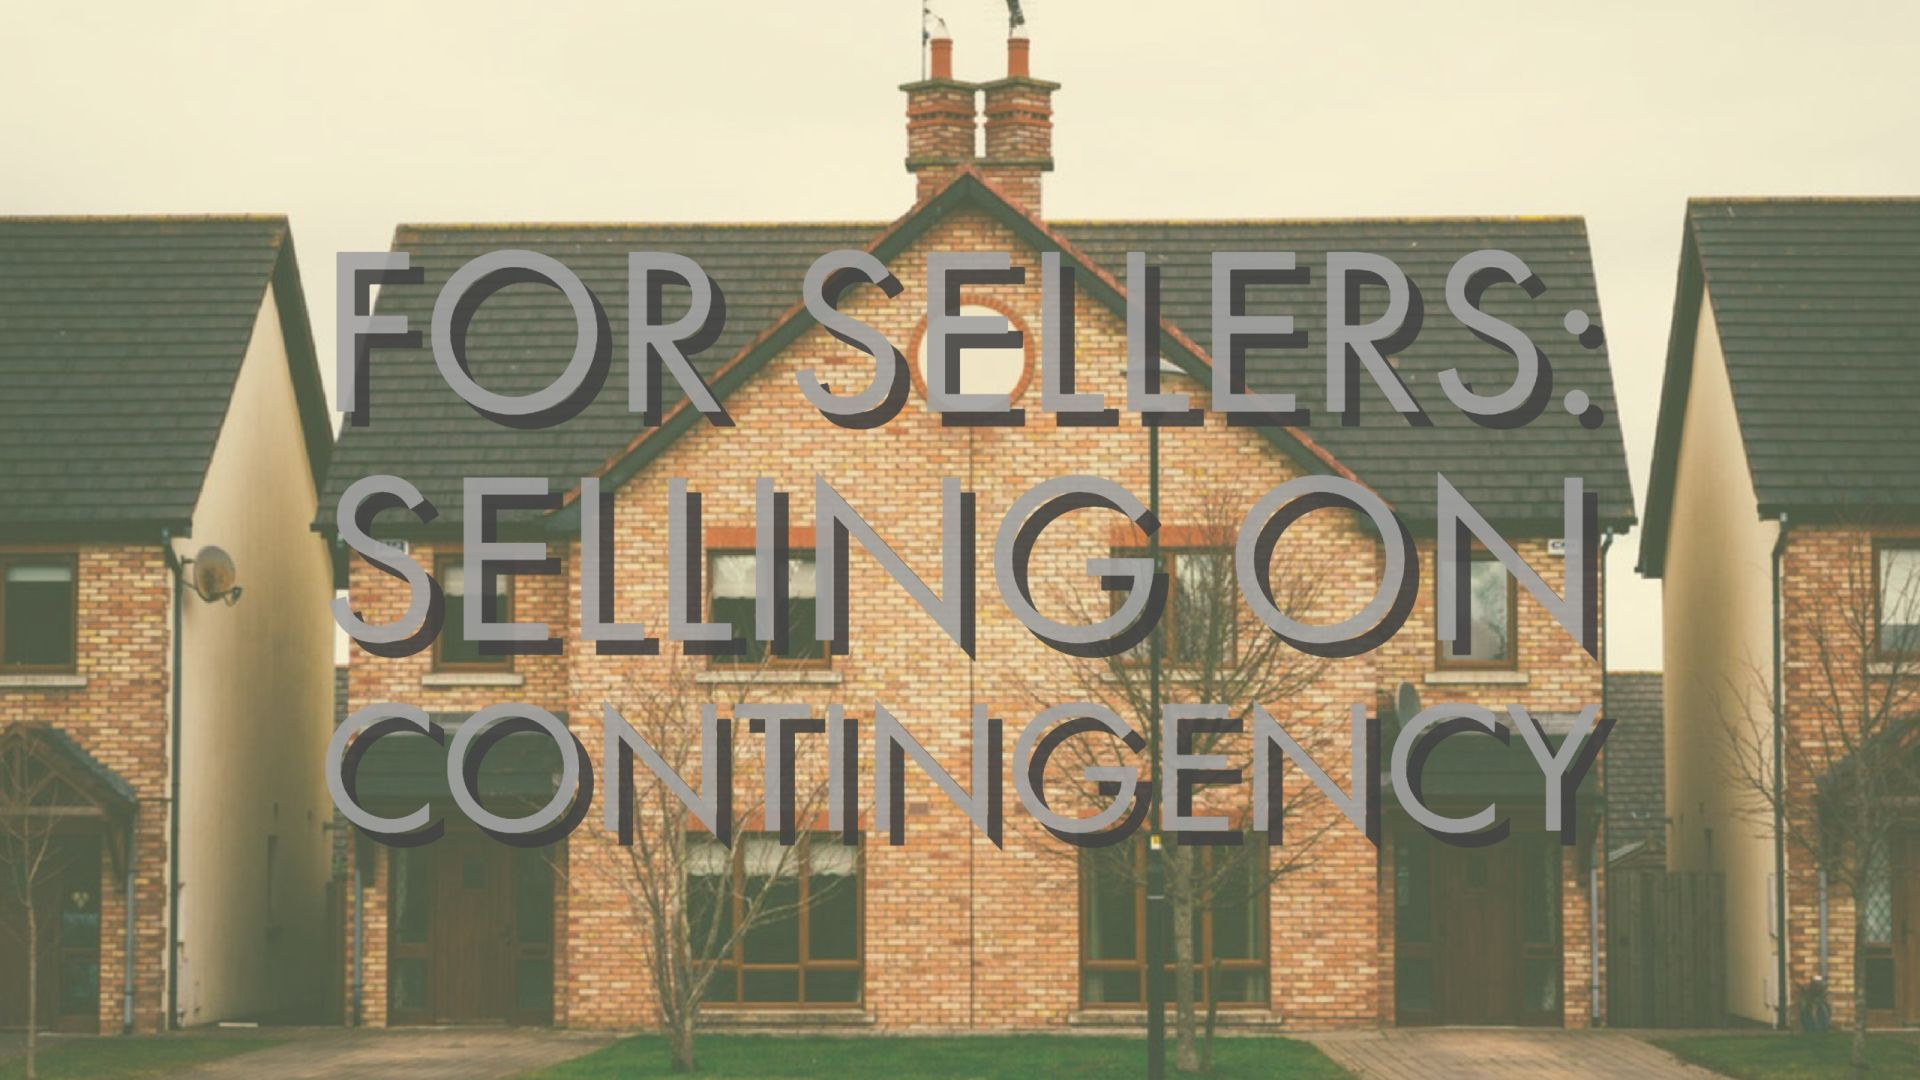 For Sellers: Selling on Contingency